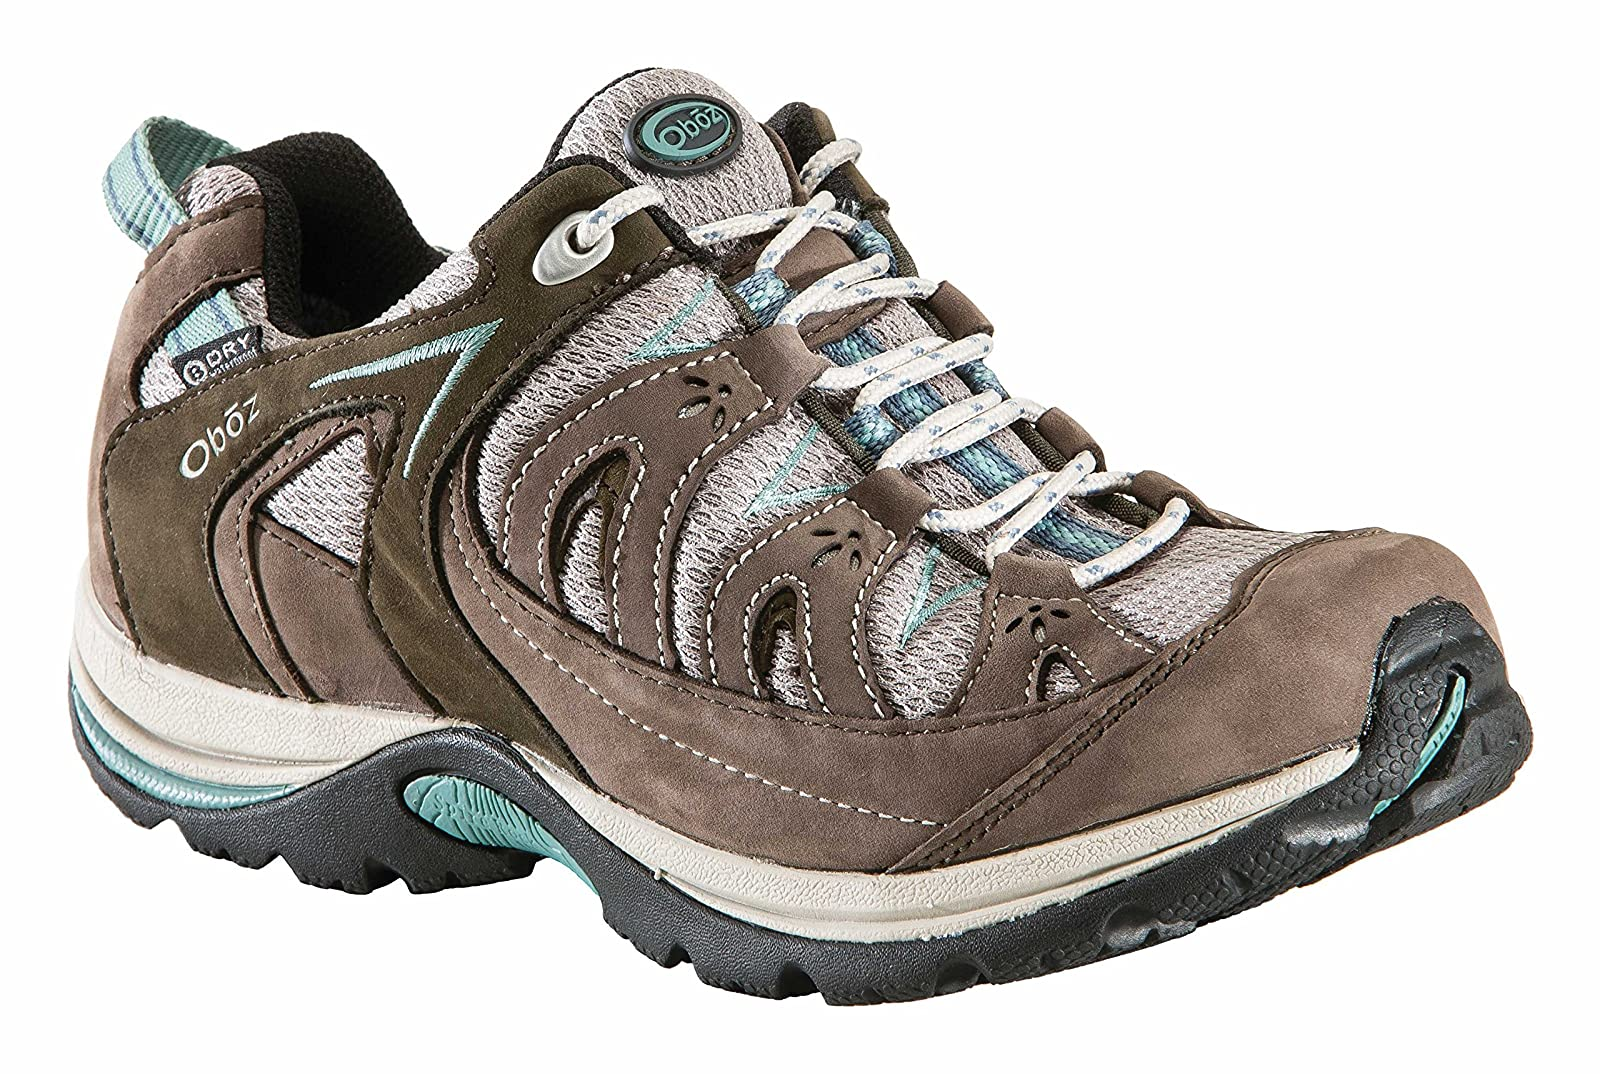 Oboz Women's Mystic Low Bdry Hiking Bluebell 6 M US - 1